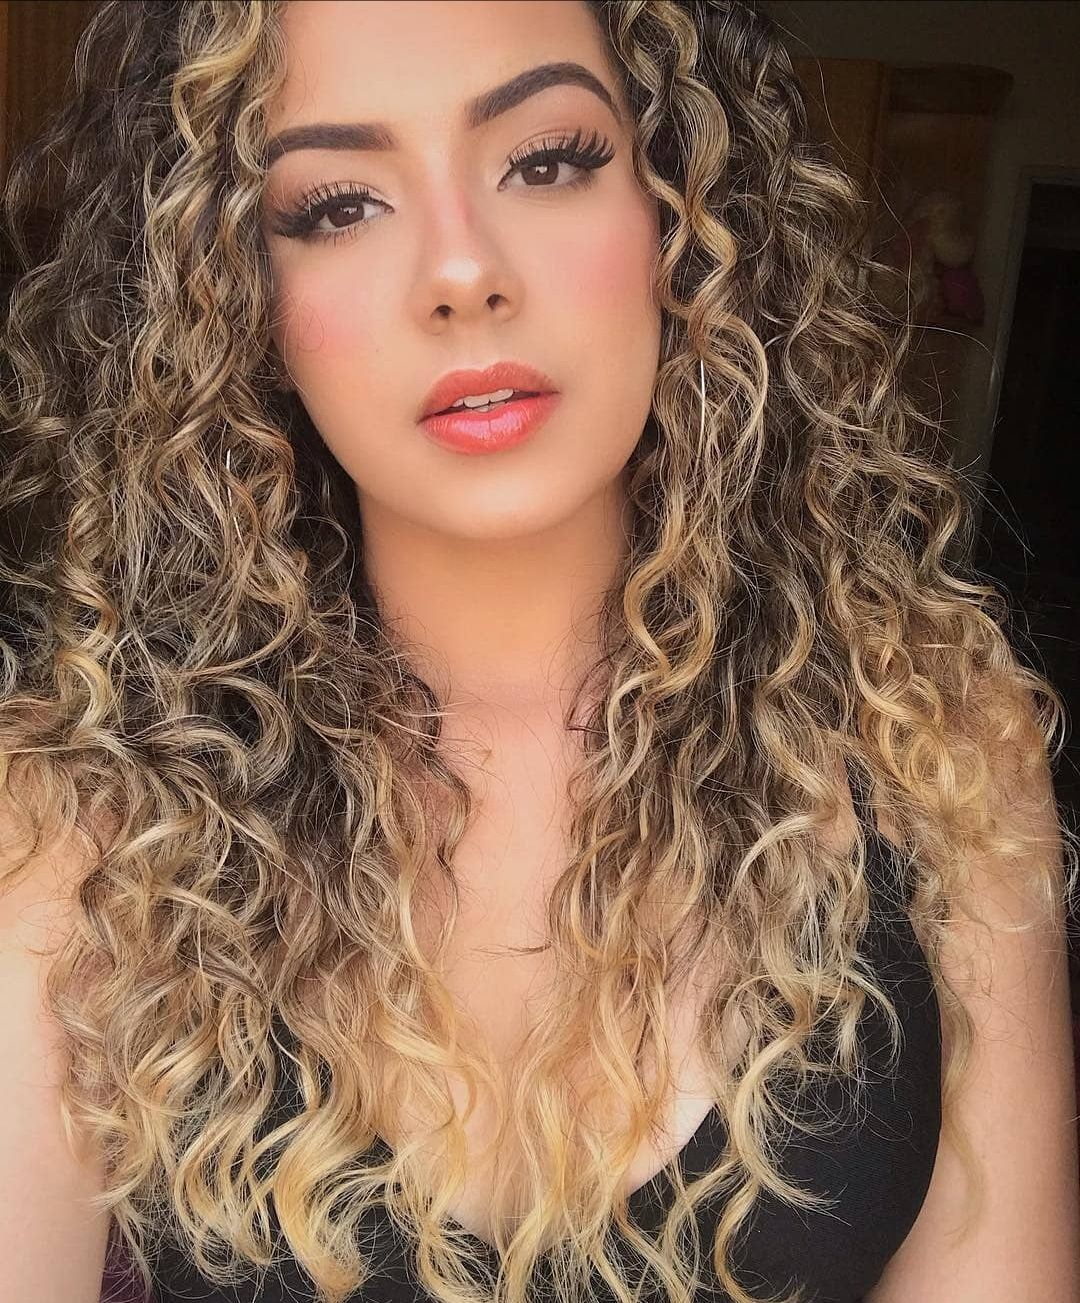 2019 Eid Hairstyles - 30 Latest Girls Hairstyles For Eid   Beautiful curly hair, Curly hair ...